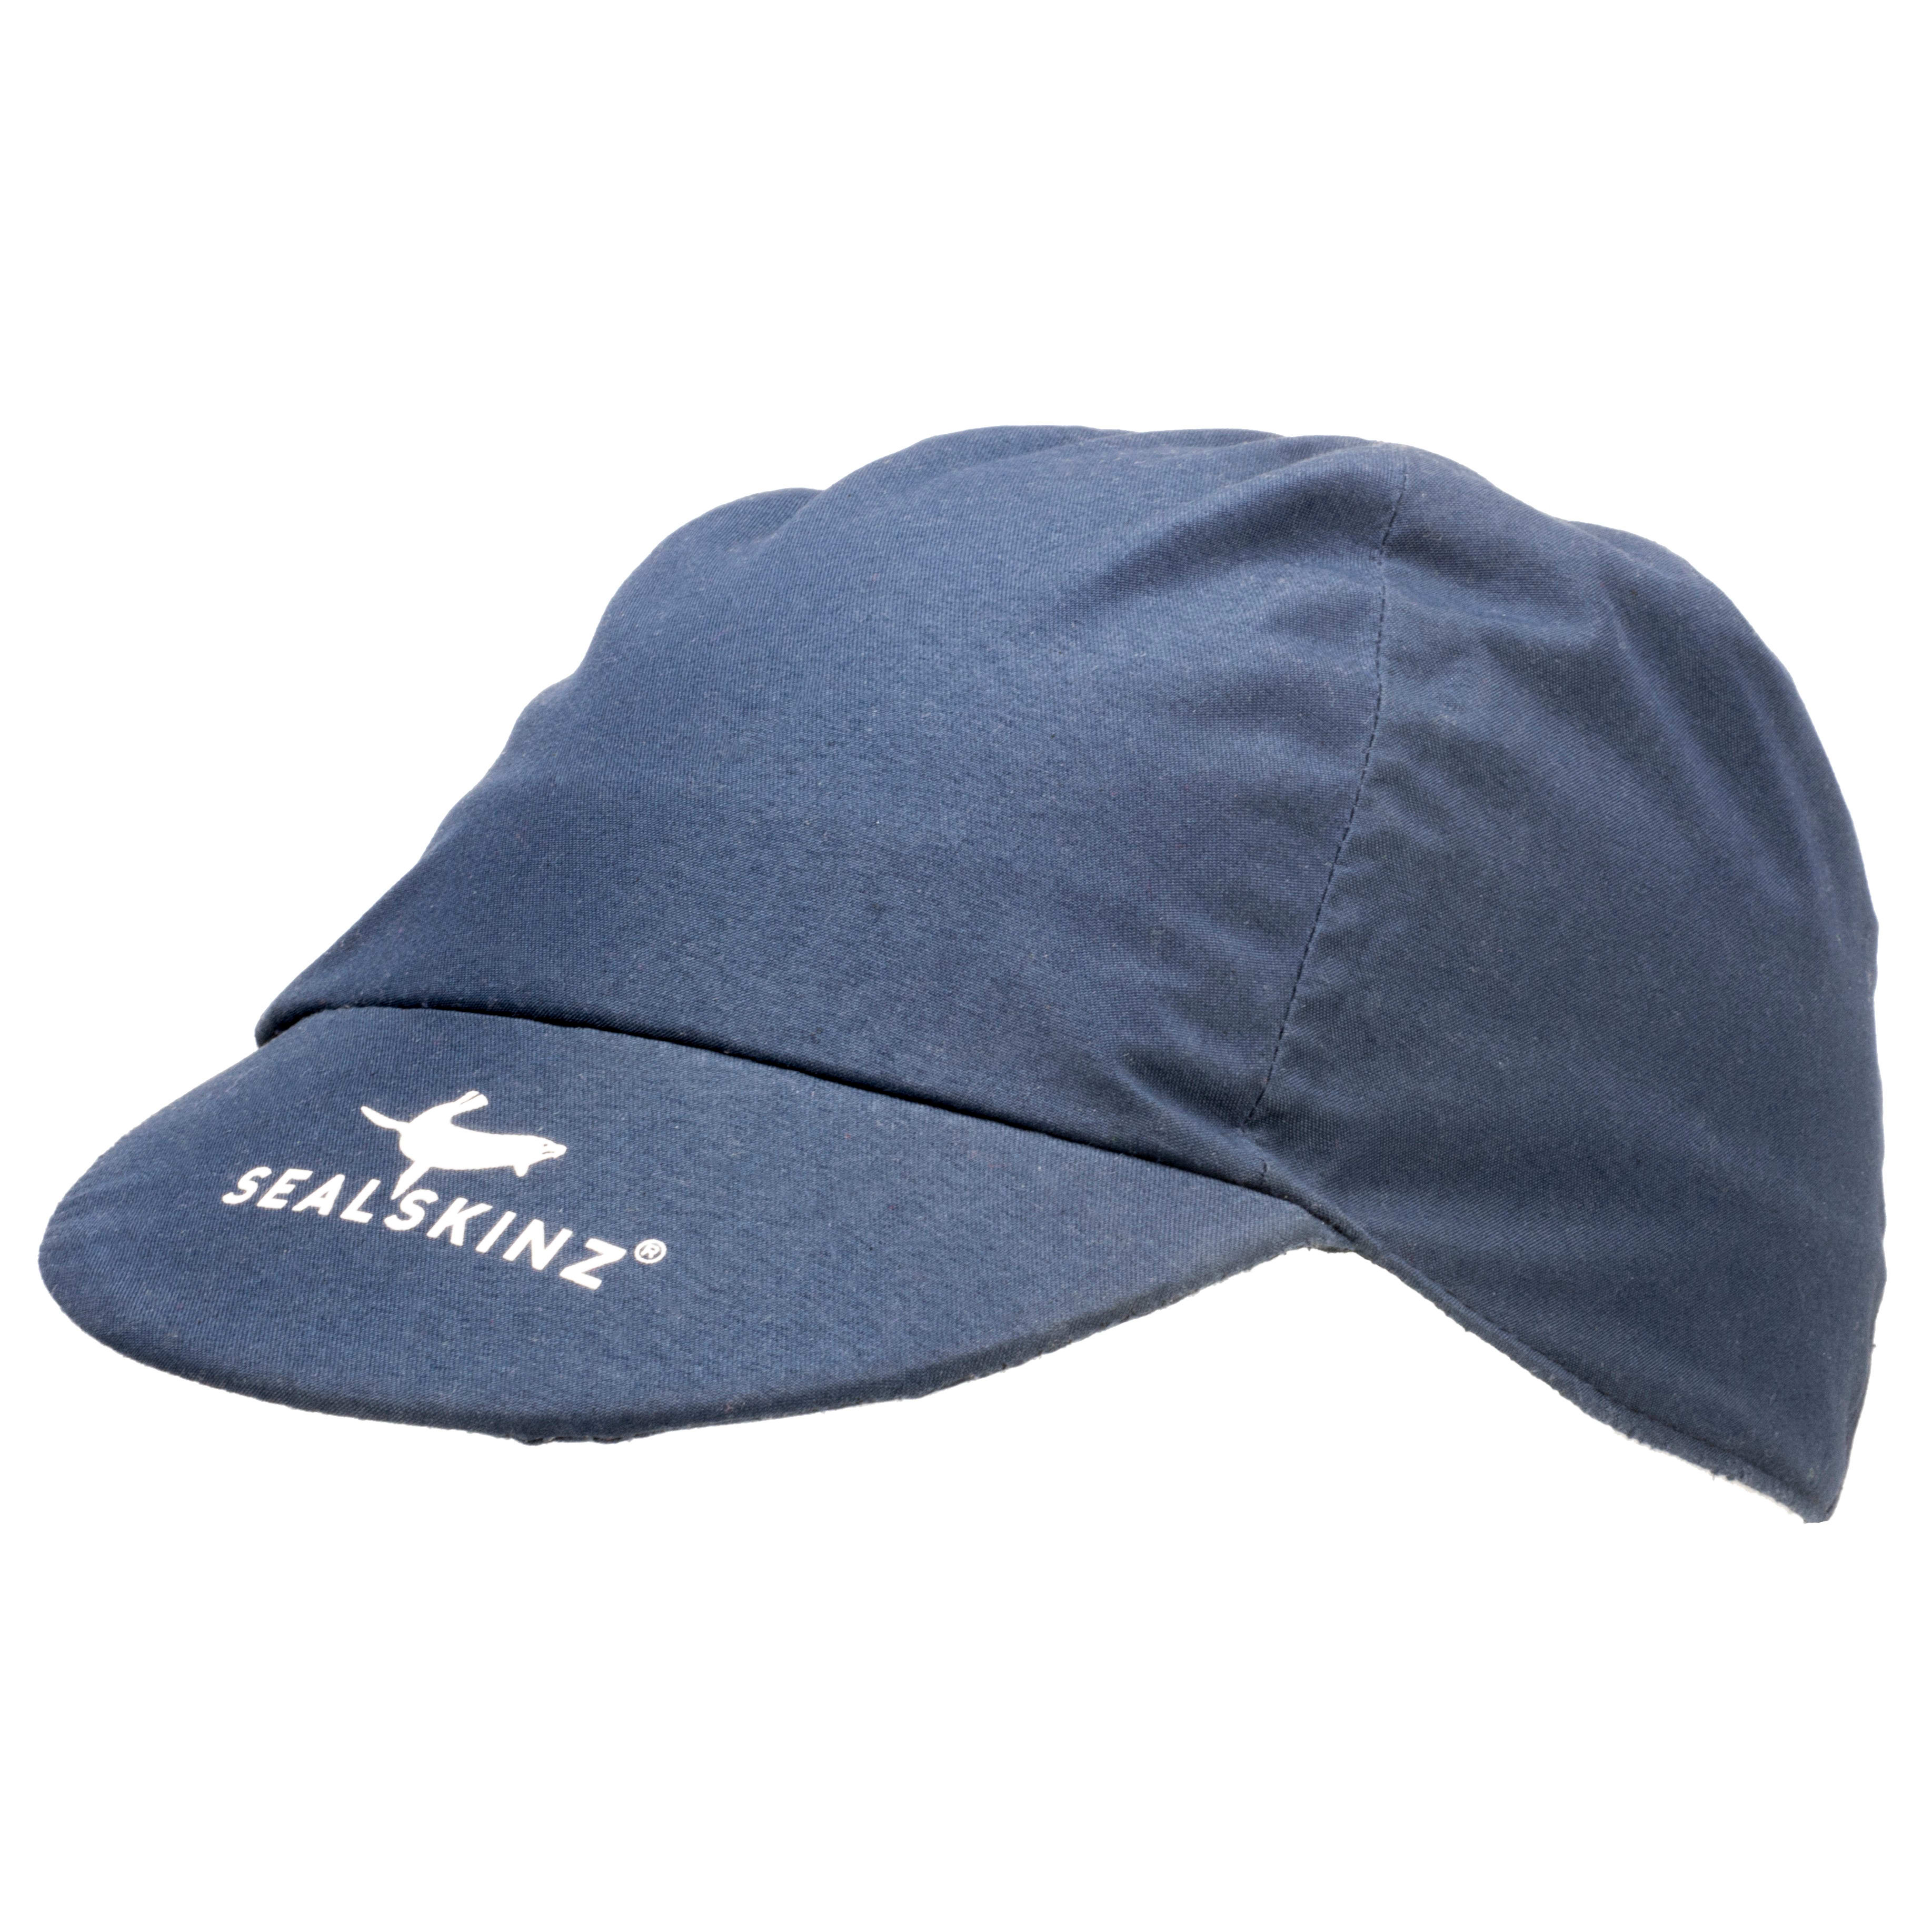 Buy Sealskinz Waterproof Cycling Cap from Outnorth 3d8199f1ed5